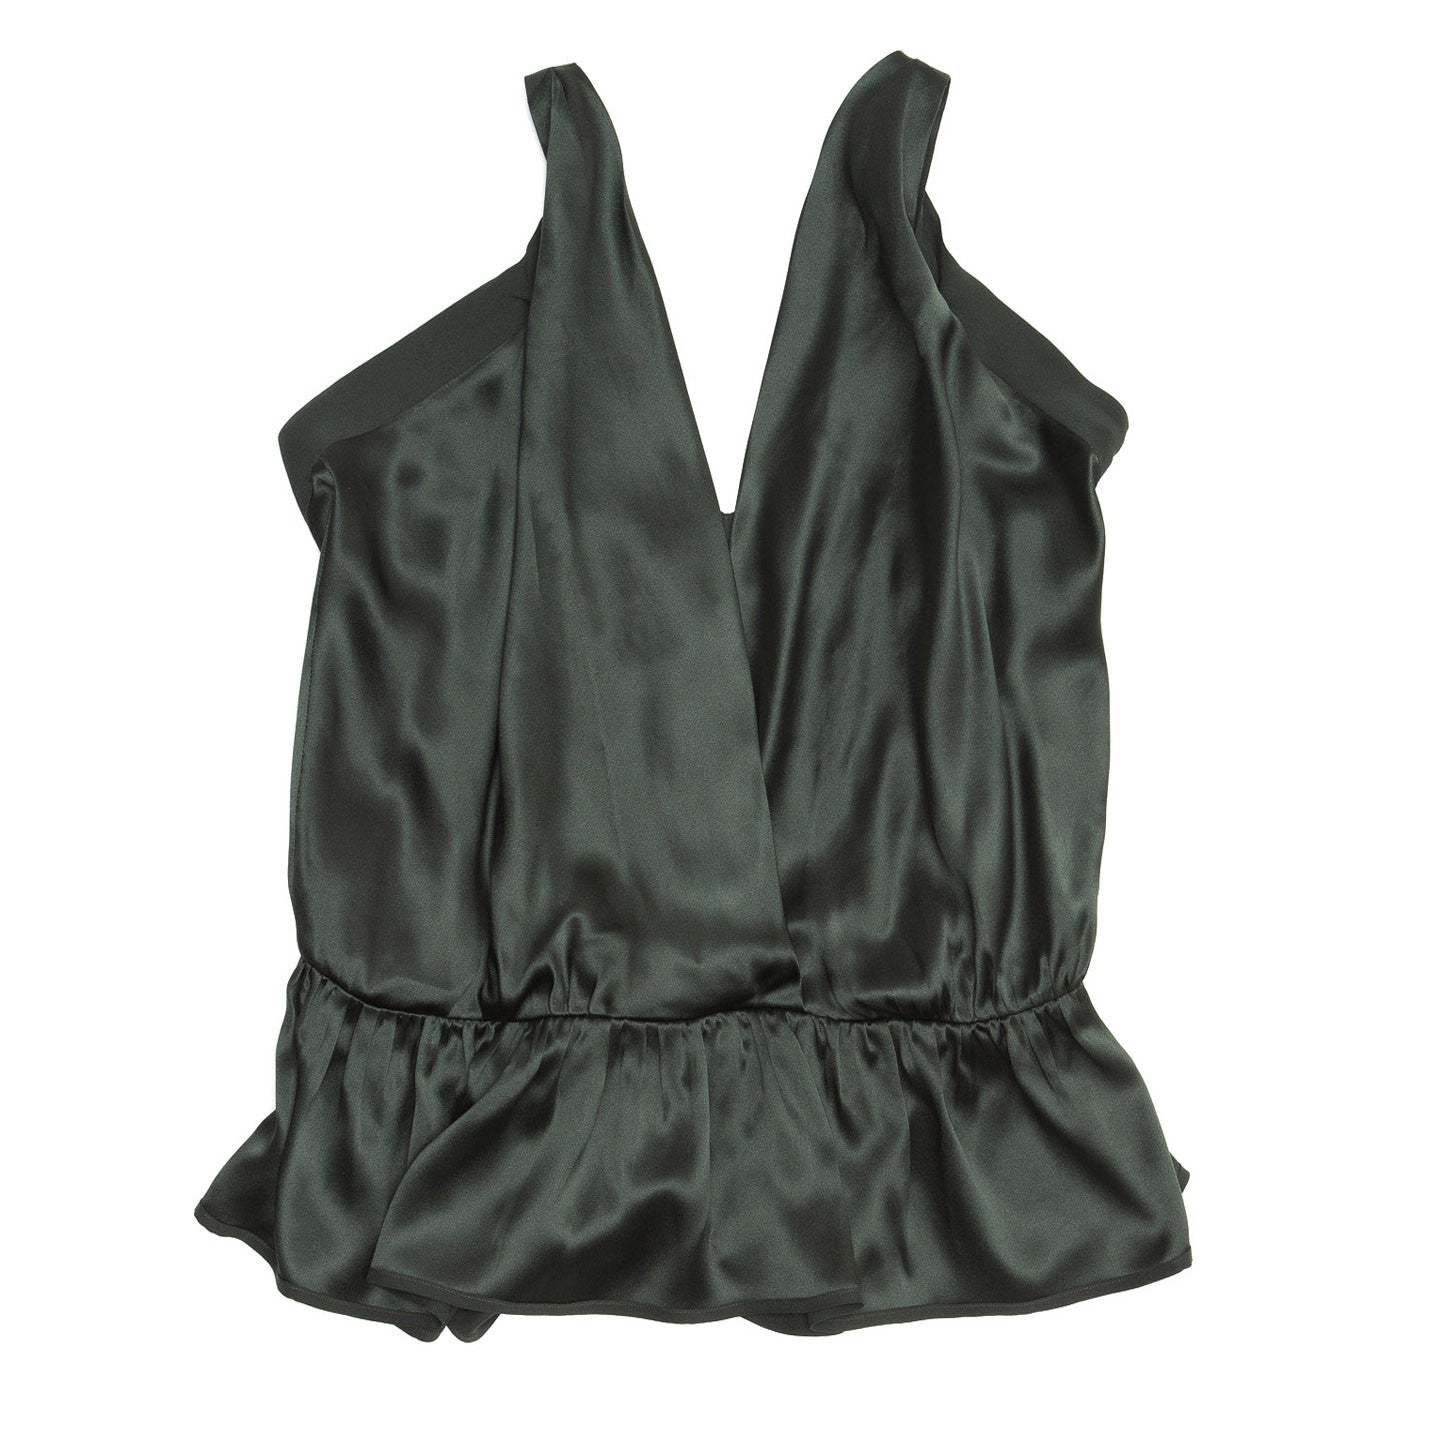 Chloe Green Silk Sleeveless Top, Size 42 (French)